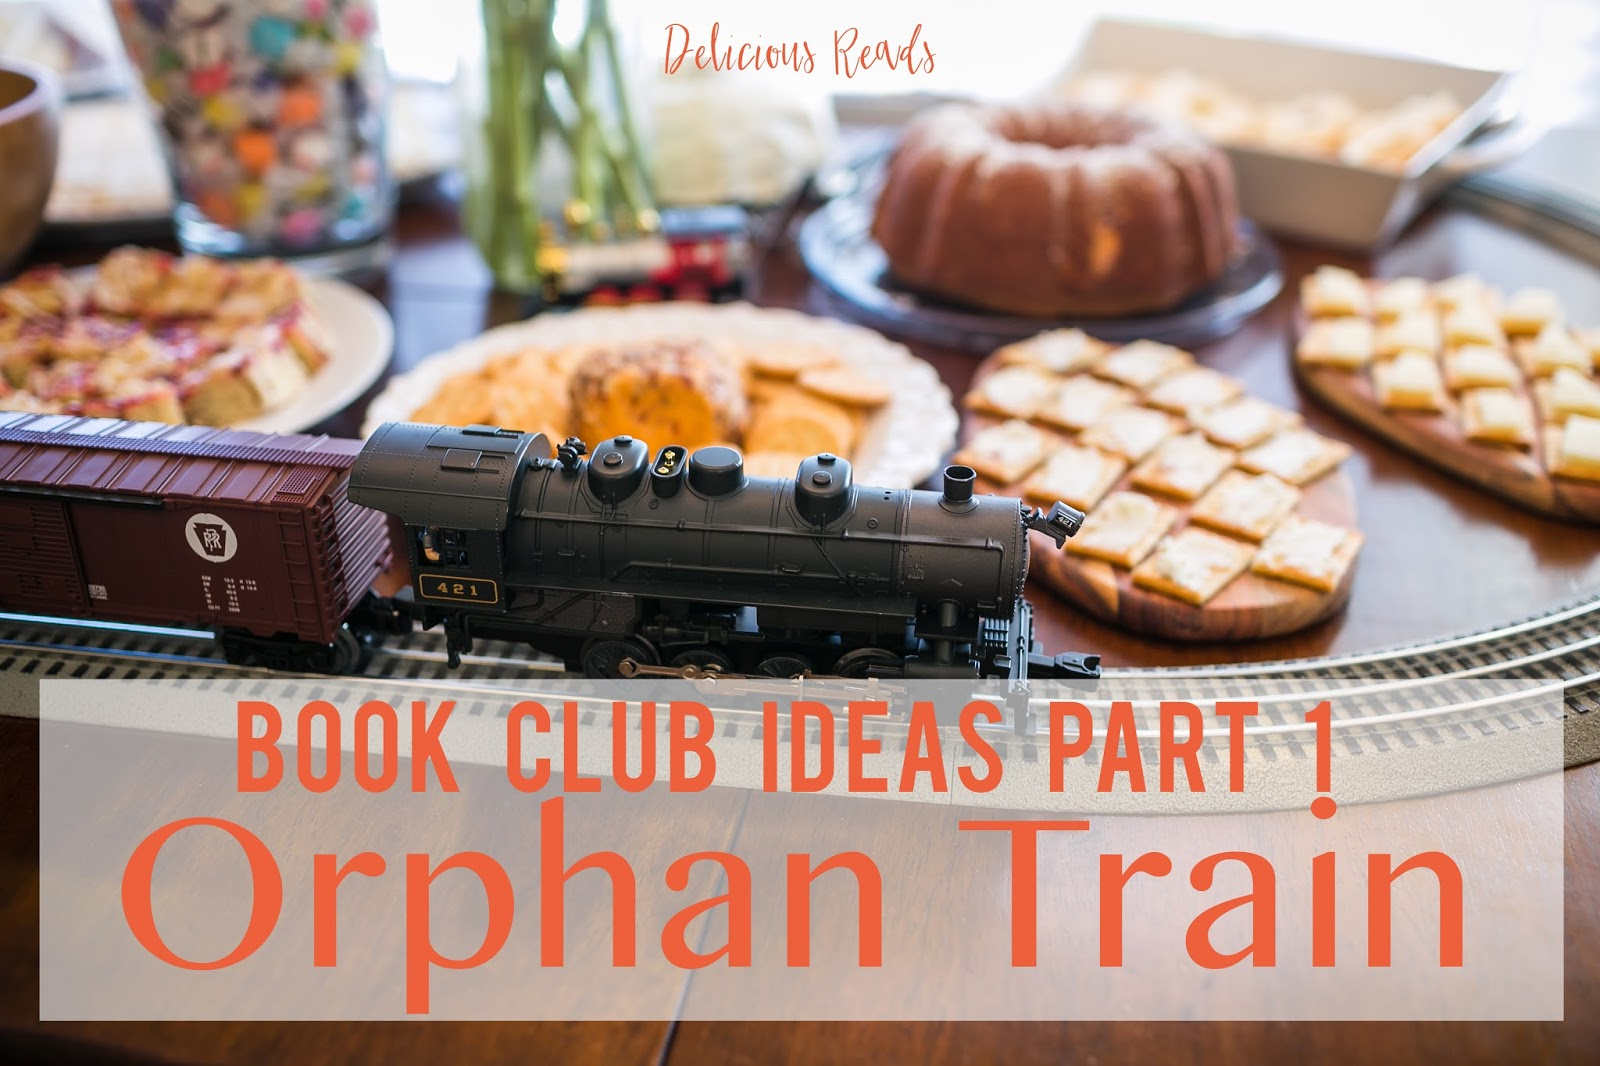 Delicious reads orphan train book club ideas part 1 orphan train book club ideas part 1 forumfinder Images